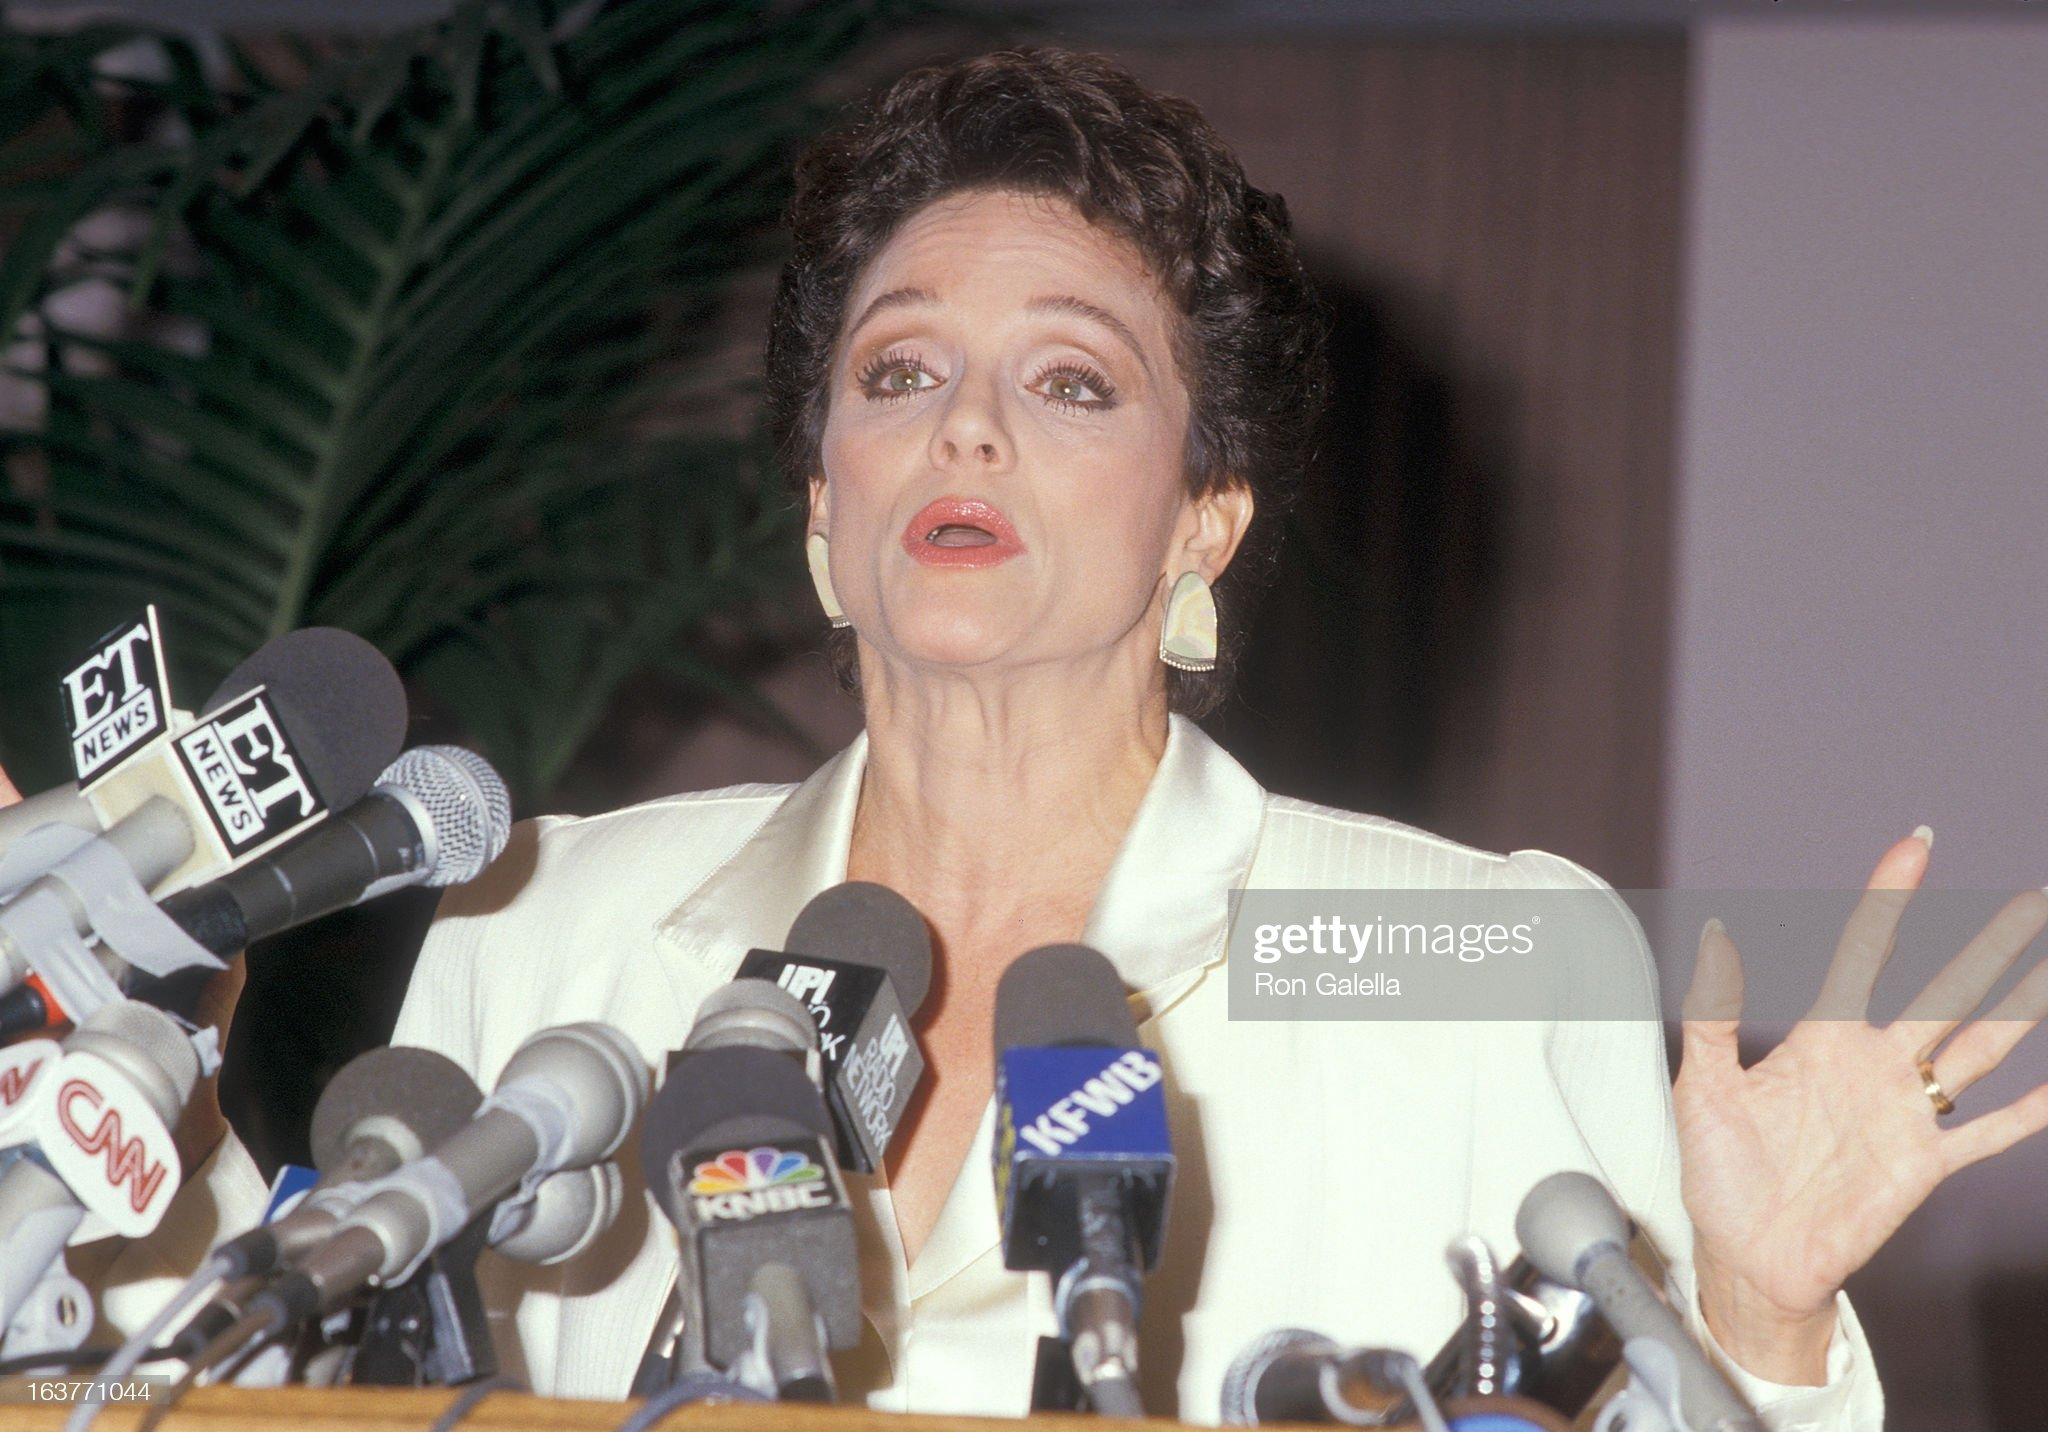 actress-valerie-harper-addresses-the-press-to-speak-about-being-fired-picture-id163771044